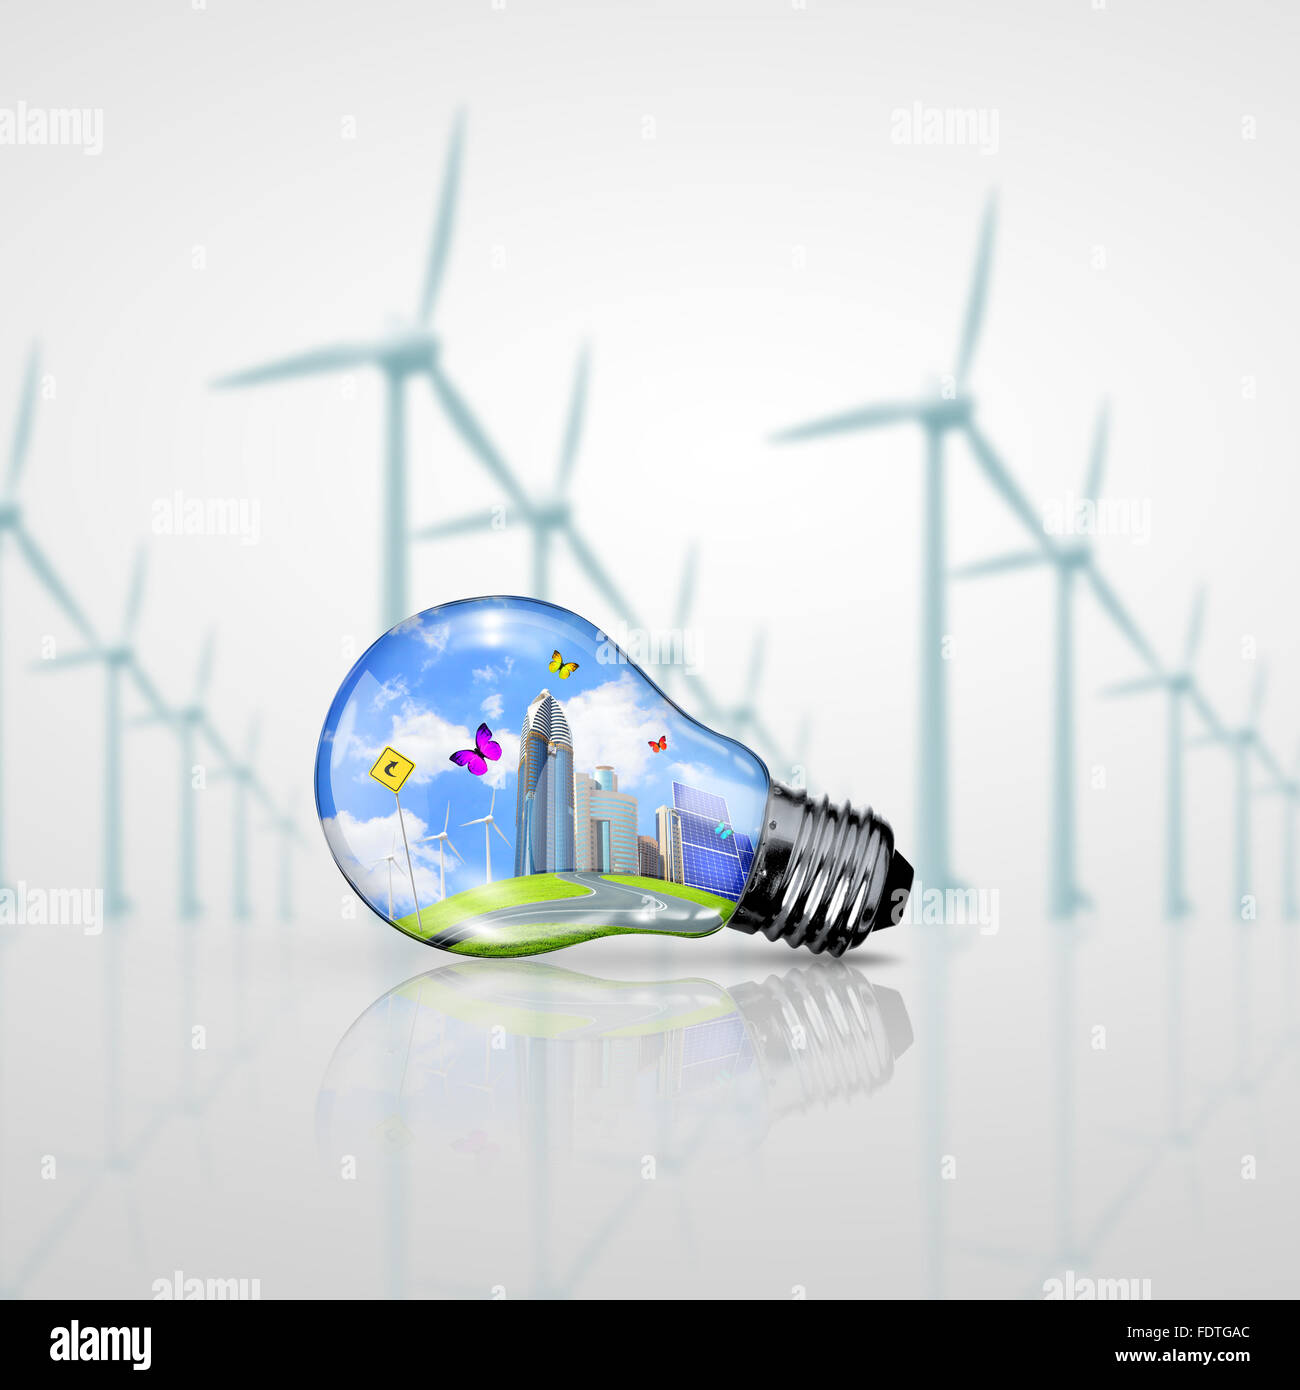 Symboles de l'énergie verte, l'écologie, concept Light bulb Photo Stock